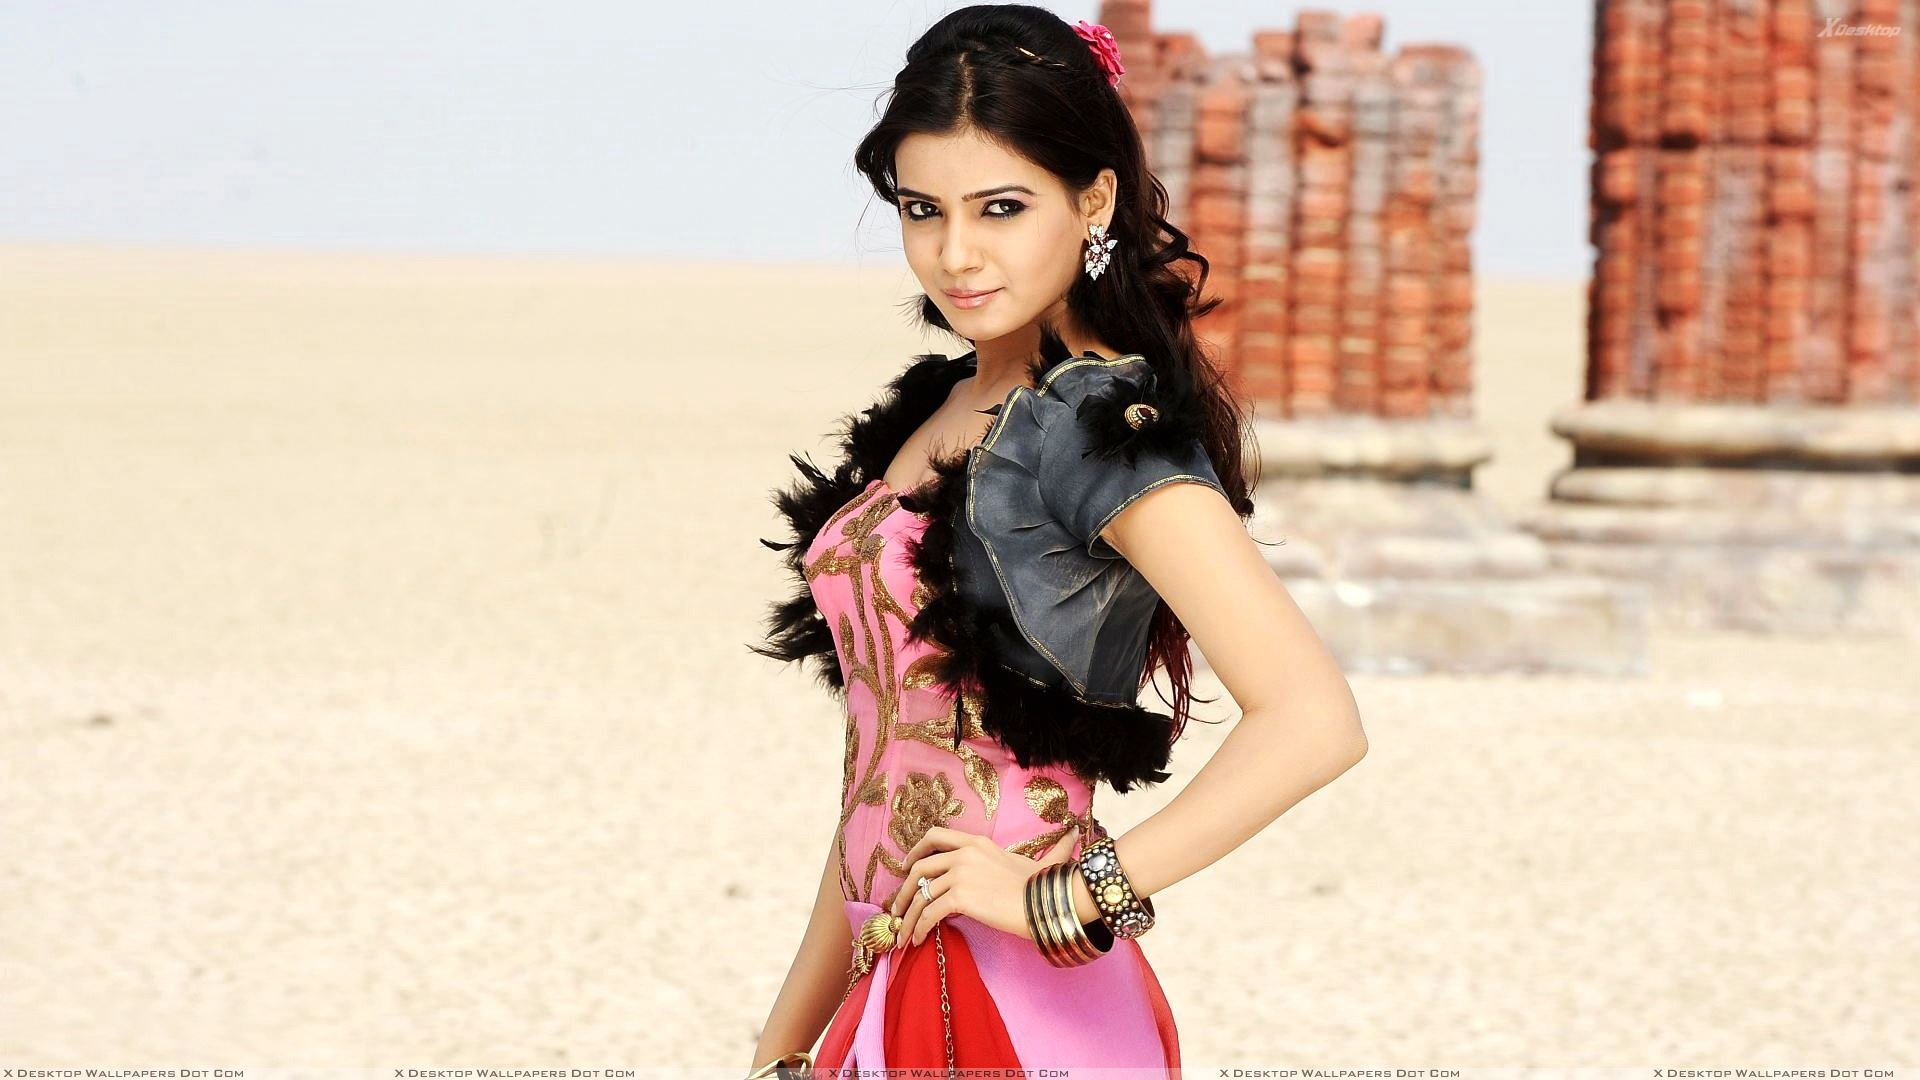 samantha ruth prabhu modeling pose in dookudu movie wallpaper